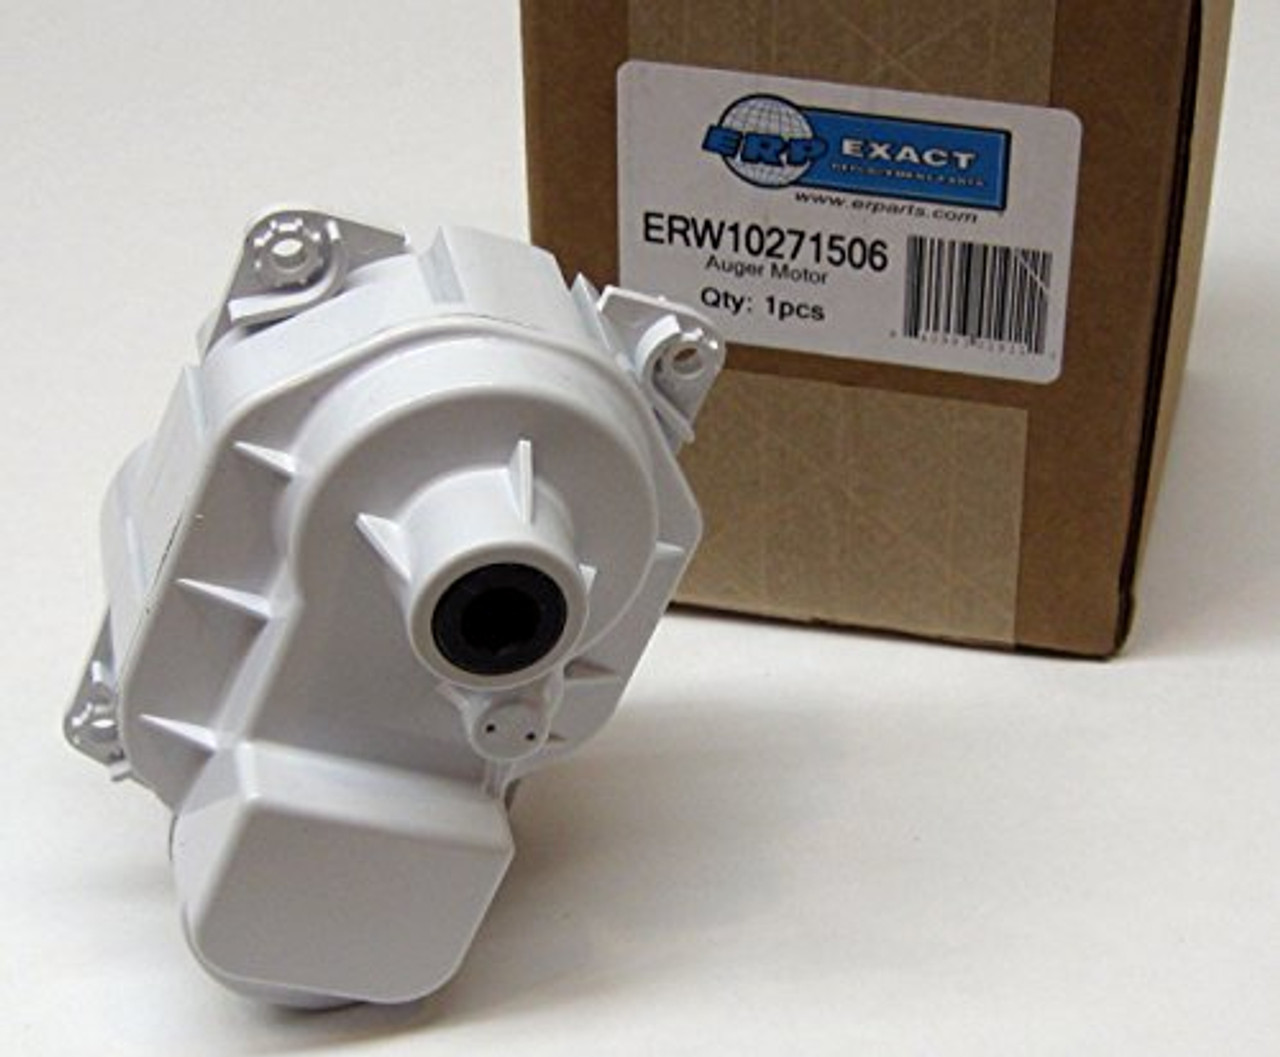 2315547 for Whirlpool Kitchenaid Auger Motor for Icemaker W10271509